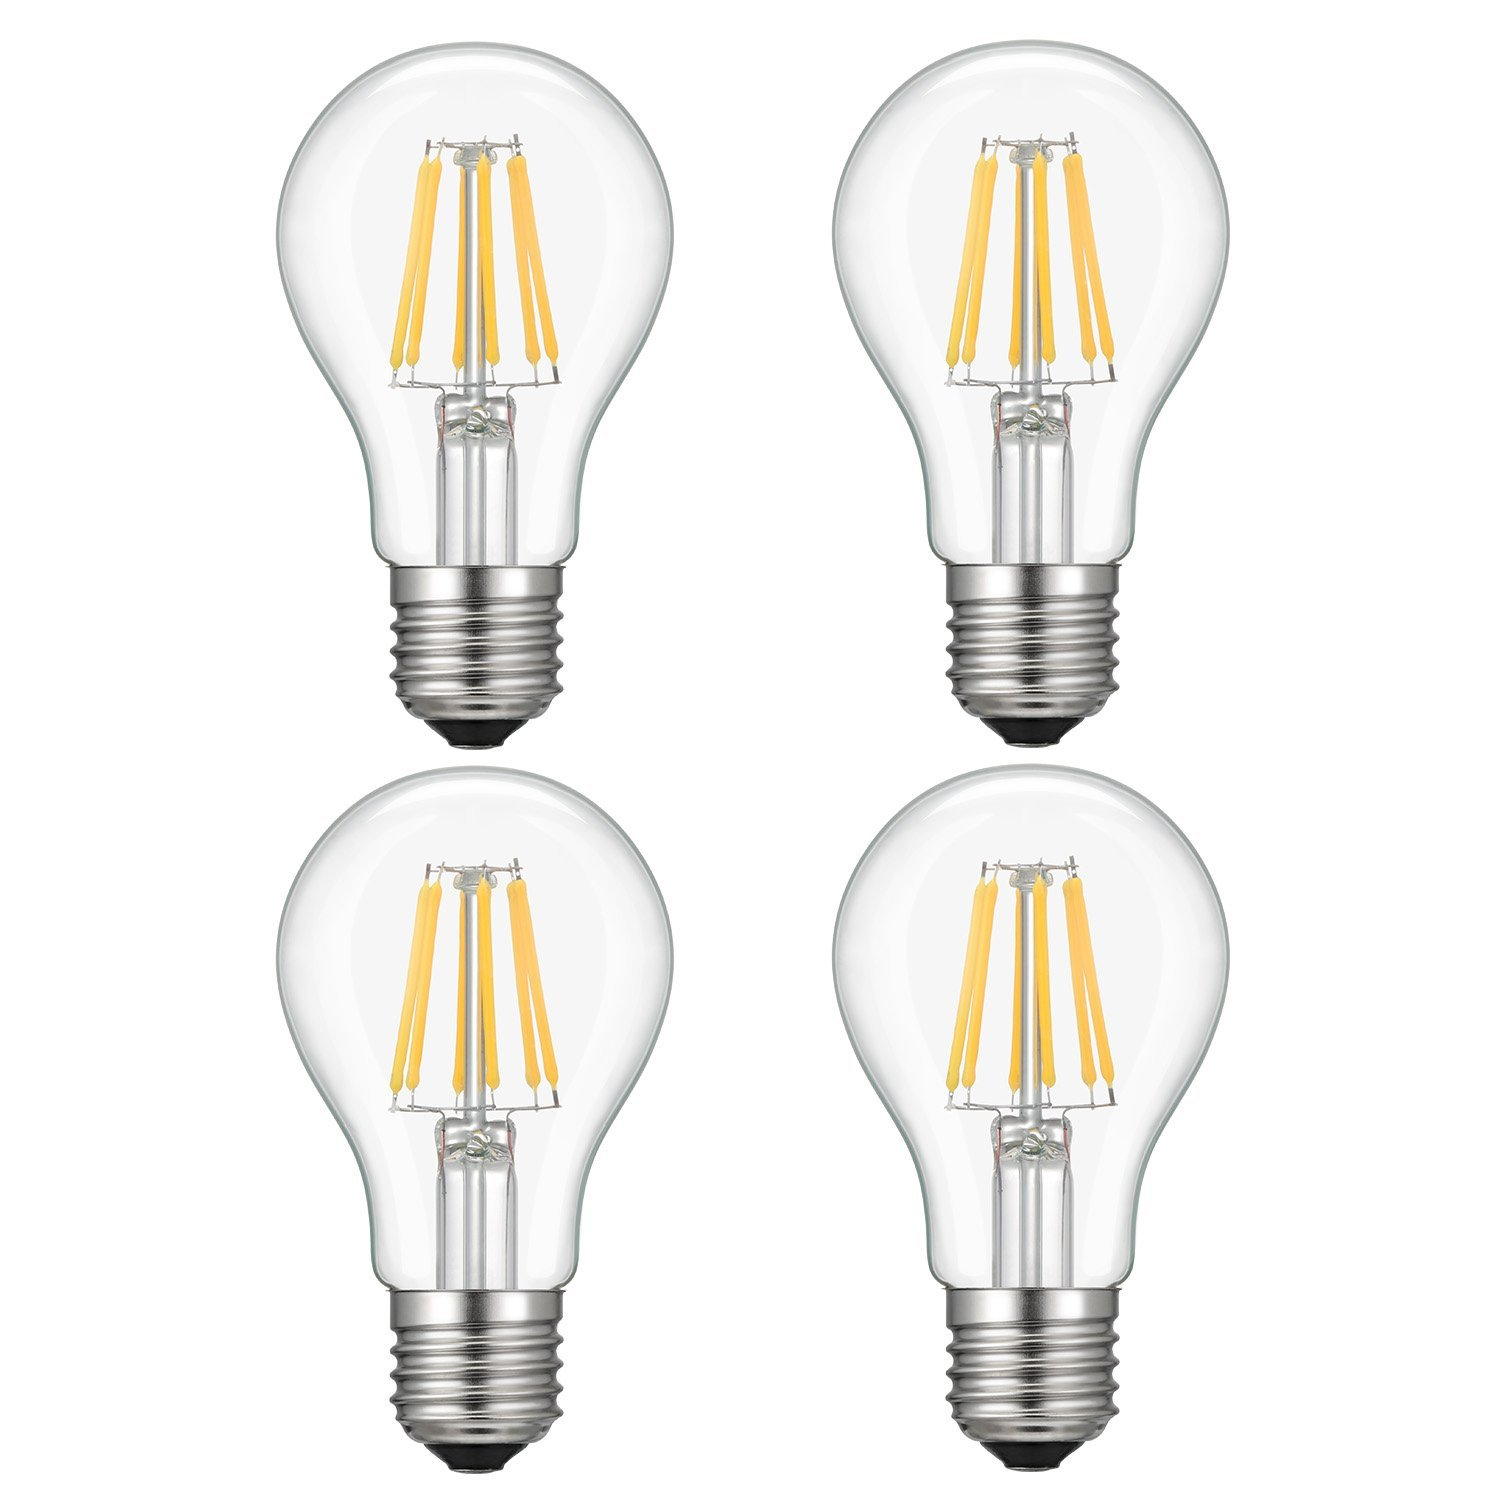 Kohree 4 Packs Dimmable 6w A19 Led Edison Light Bulb 110v